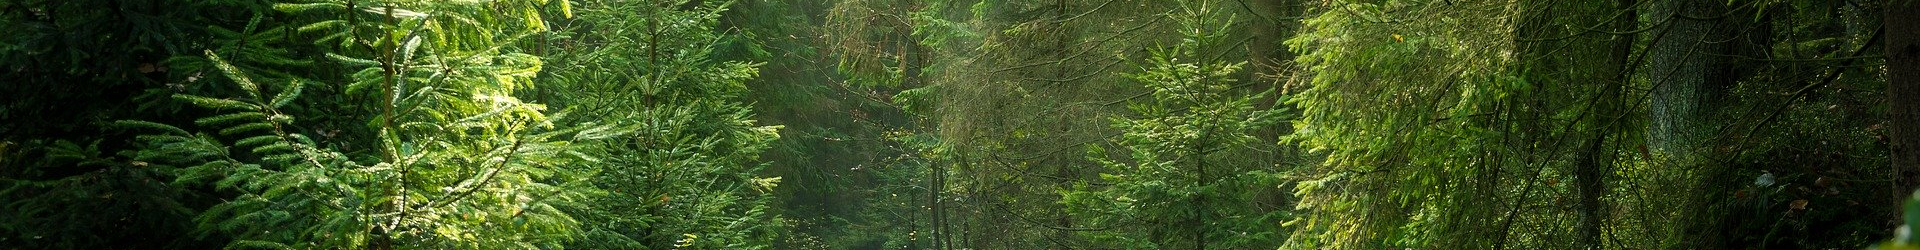 A banner image of a deep green forest